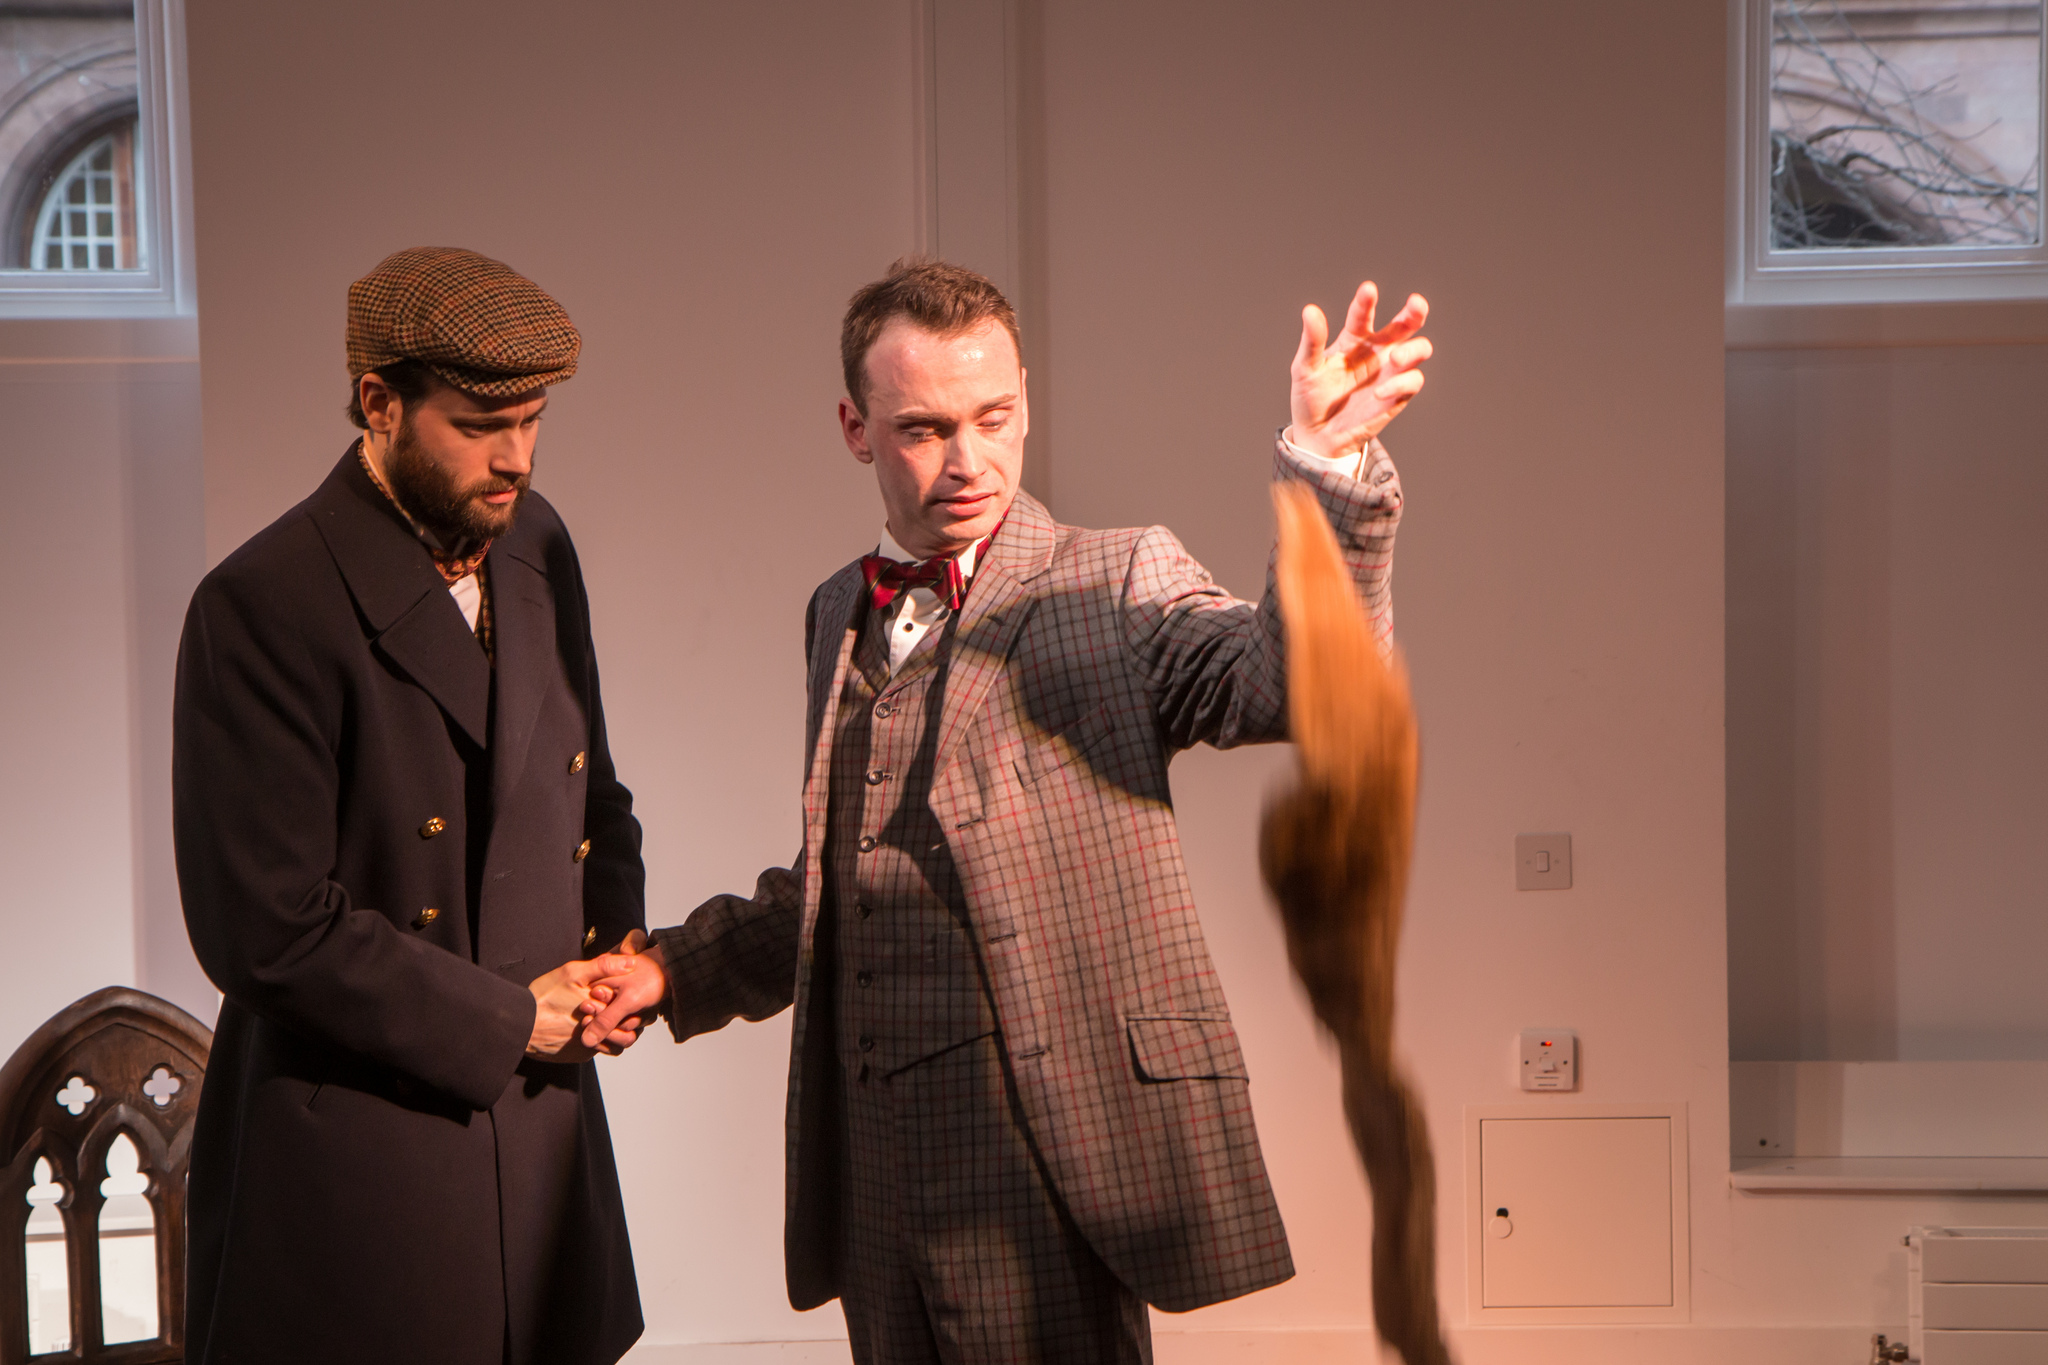 GARETH GEORGE AS NEWMAN AND DAN WALLACE AS KITTY HEARTSTONE (LEFT TO RIGHT)